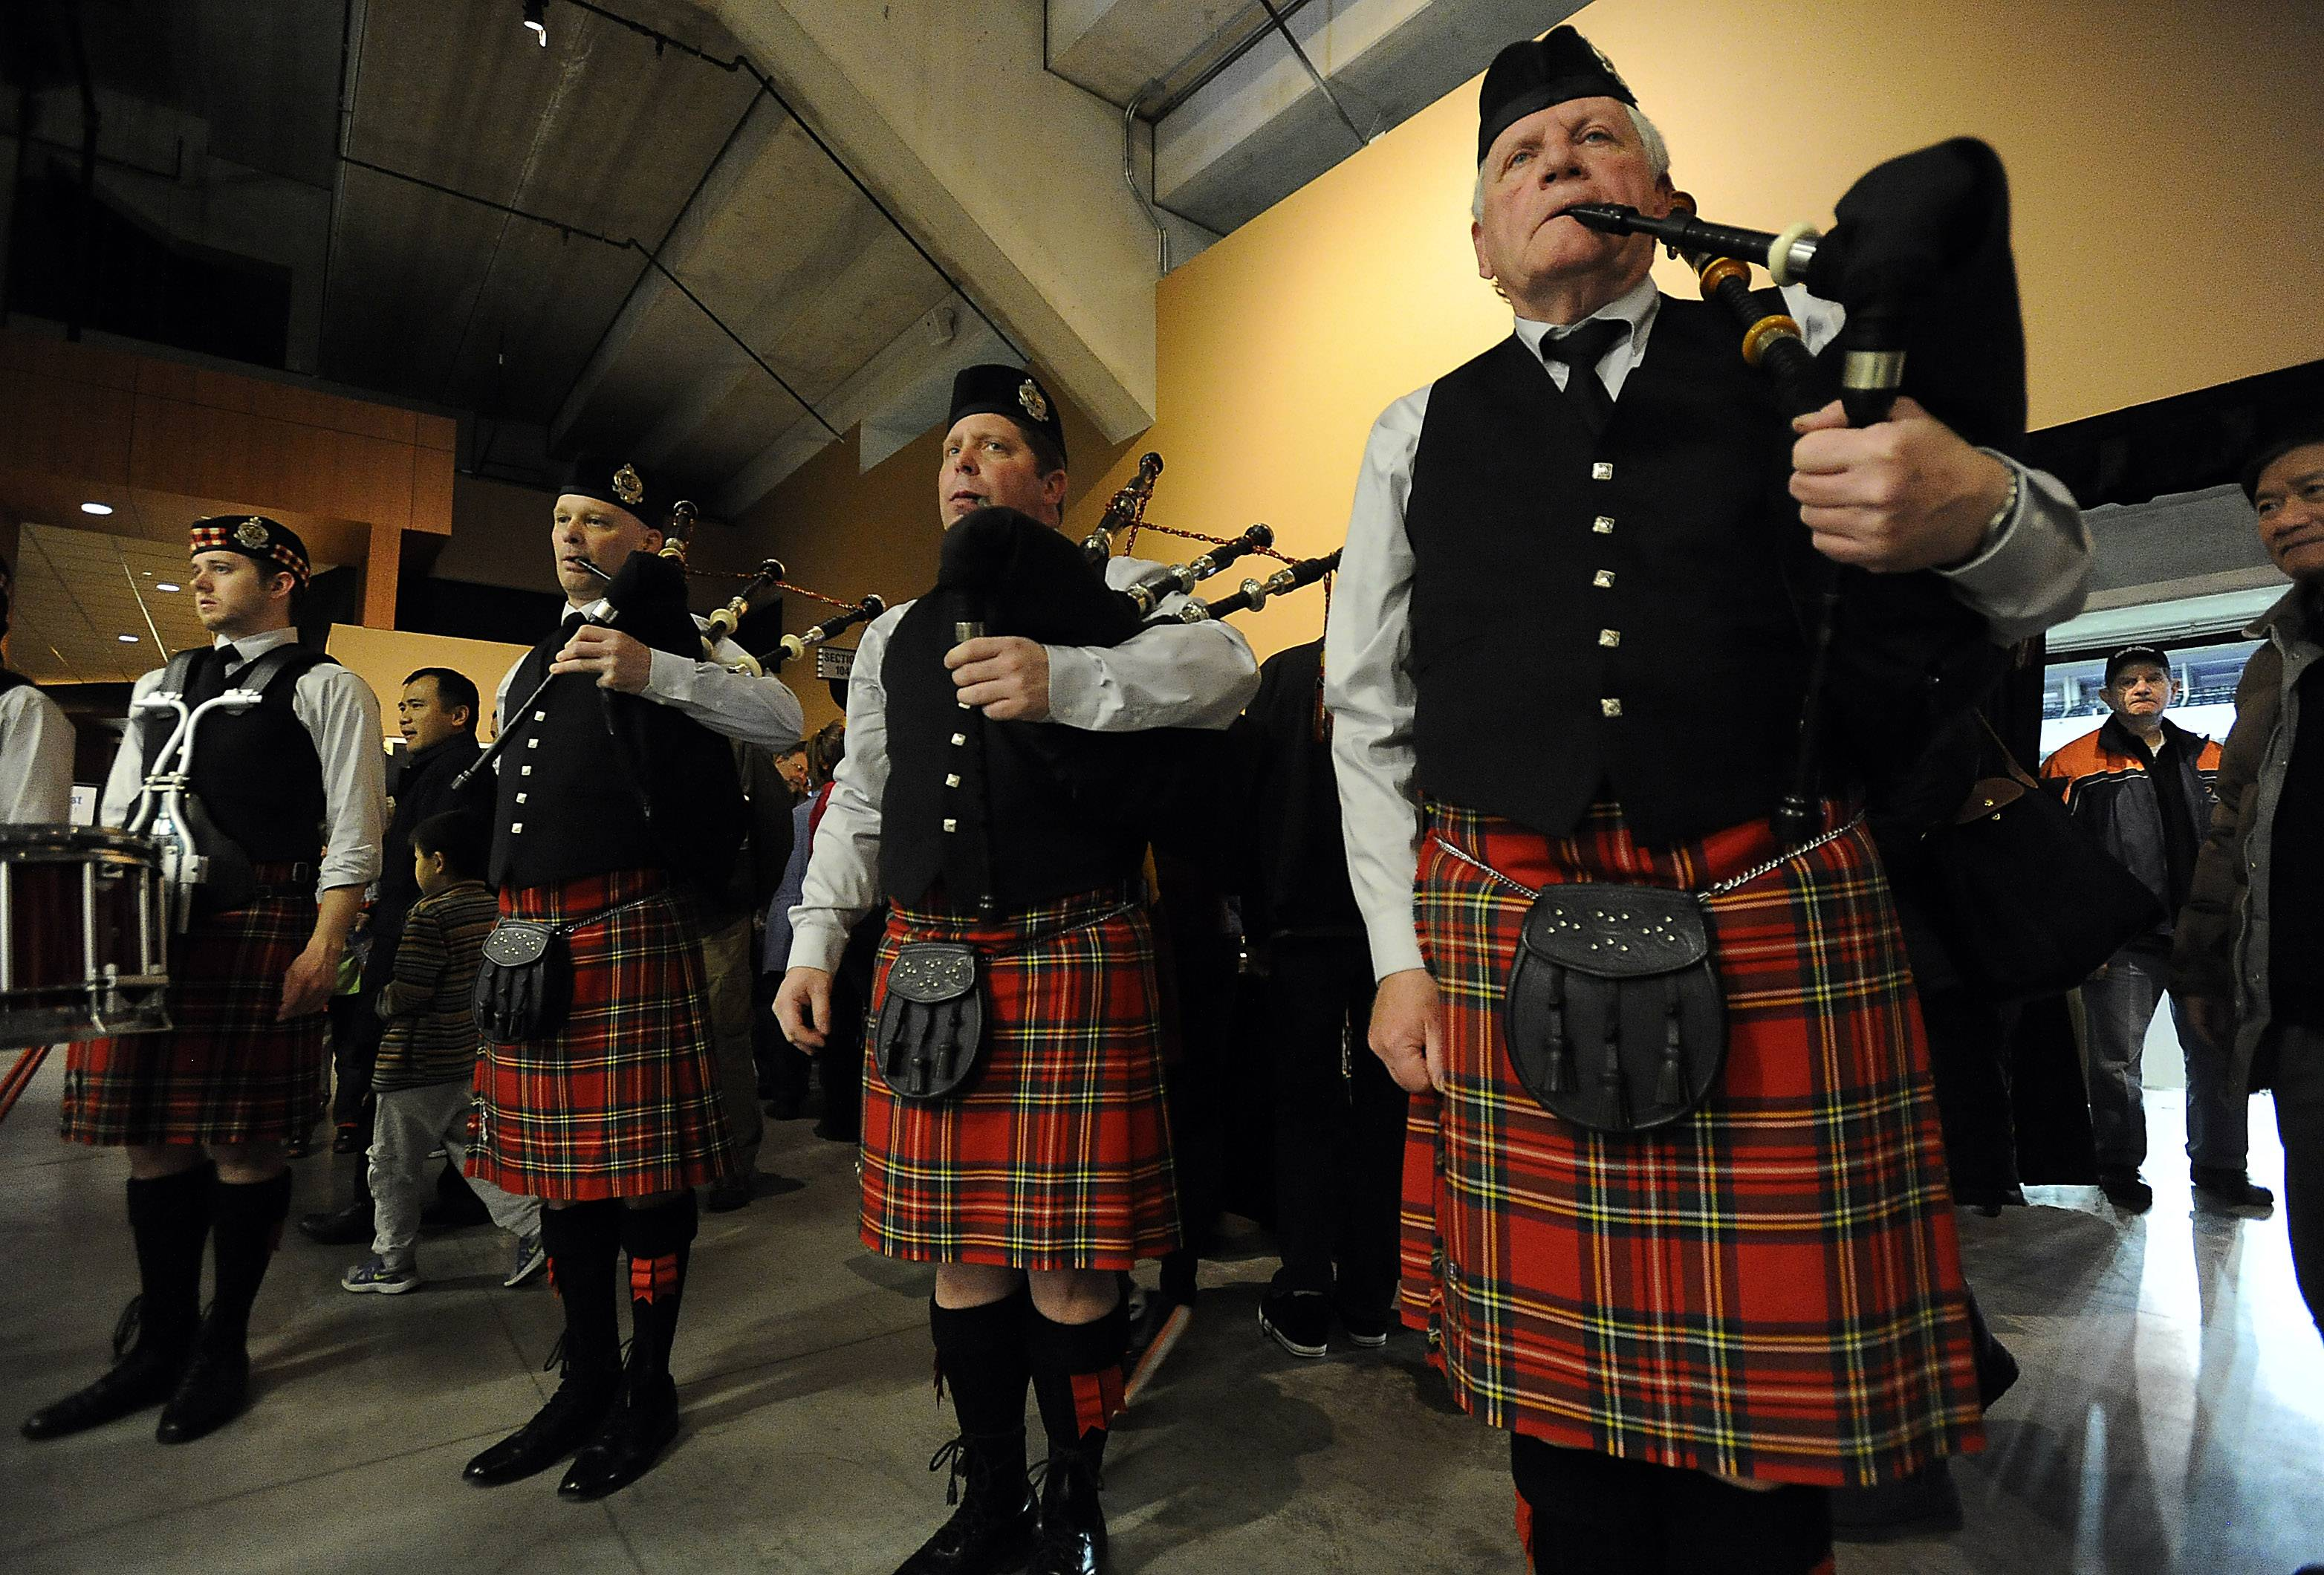 The Chicago Highland Pipes and Drums play at the third annual Northwest Celtic Fest on Saturday at the Sears Centre.